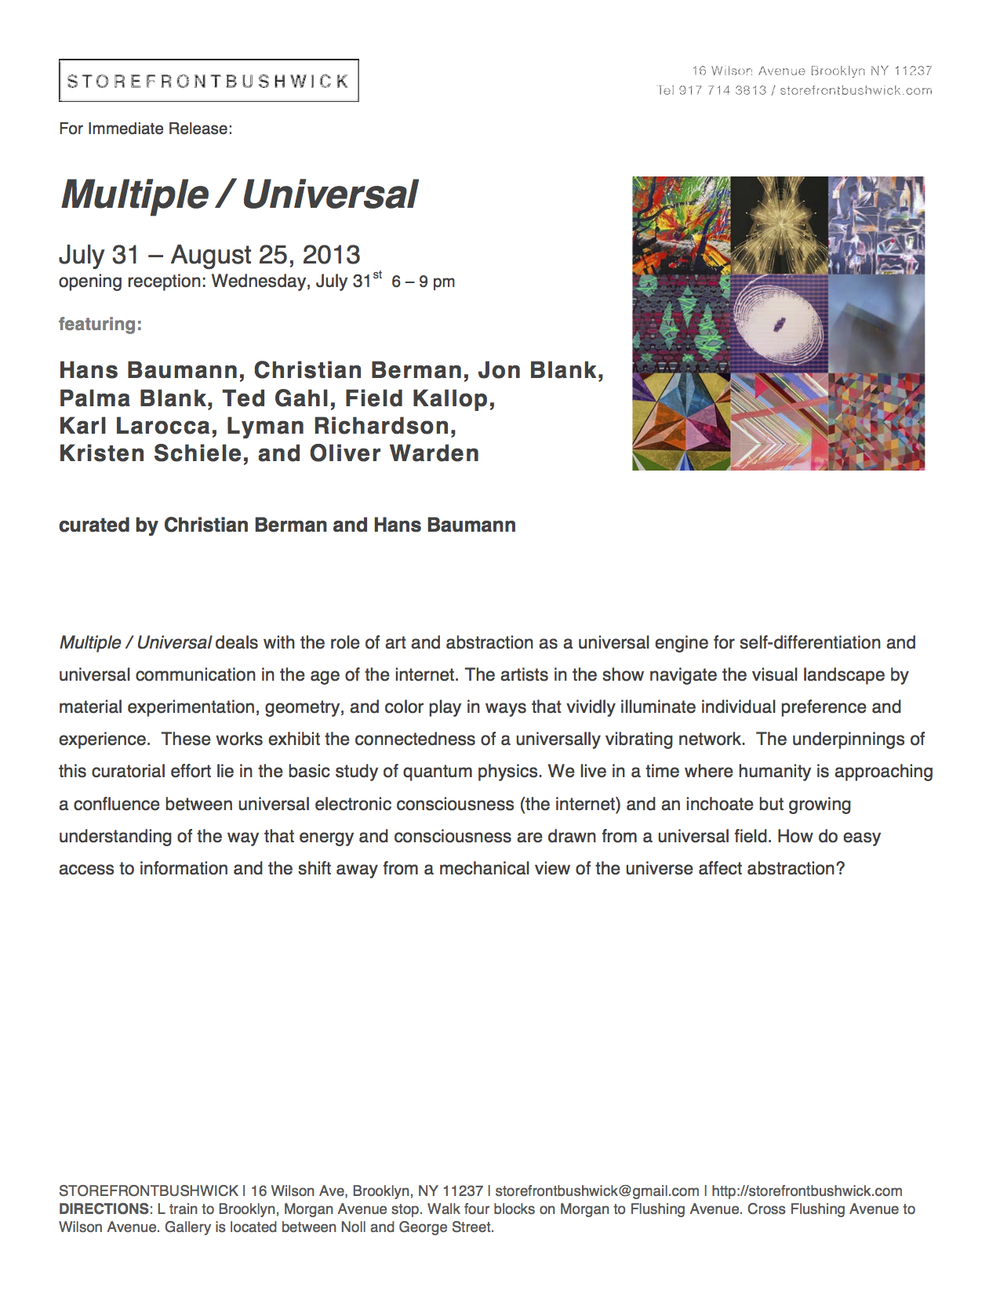 Press_Release_Multiple_Universal.jpg